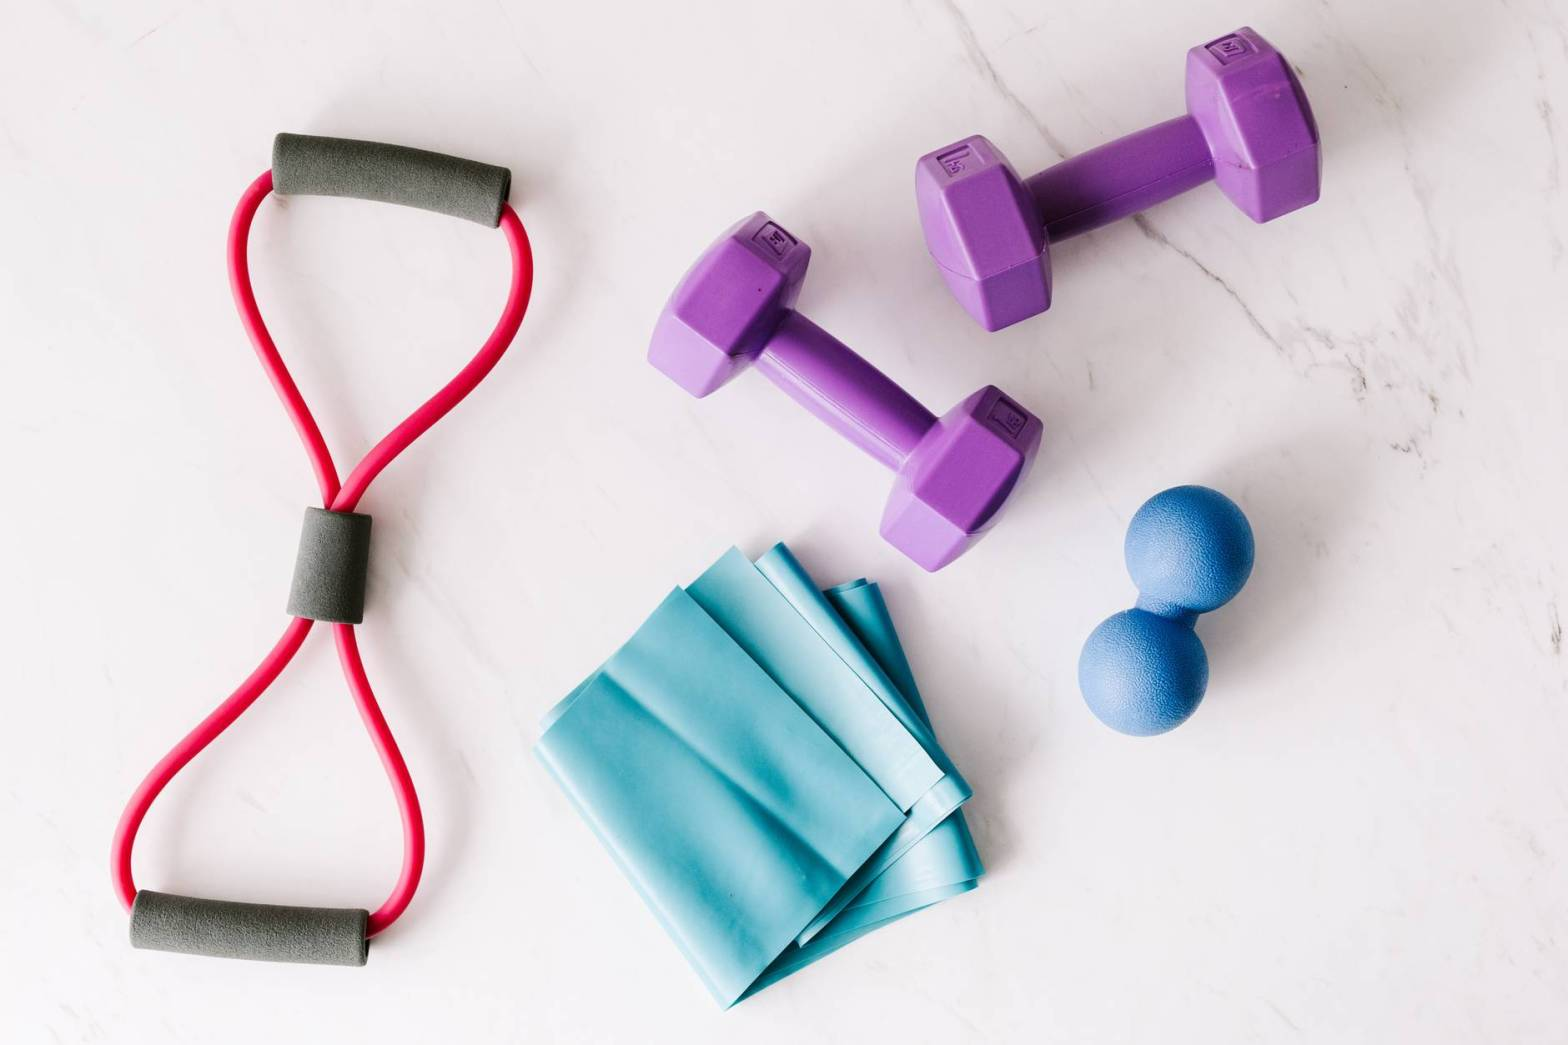 colourful fitness equipment, stretch bands and weights